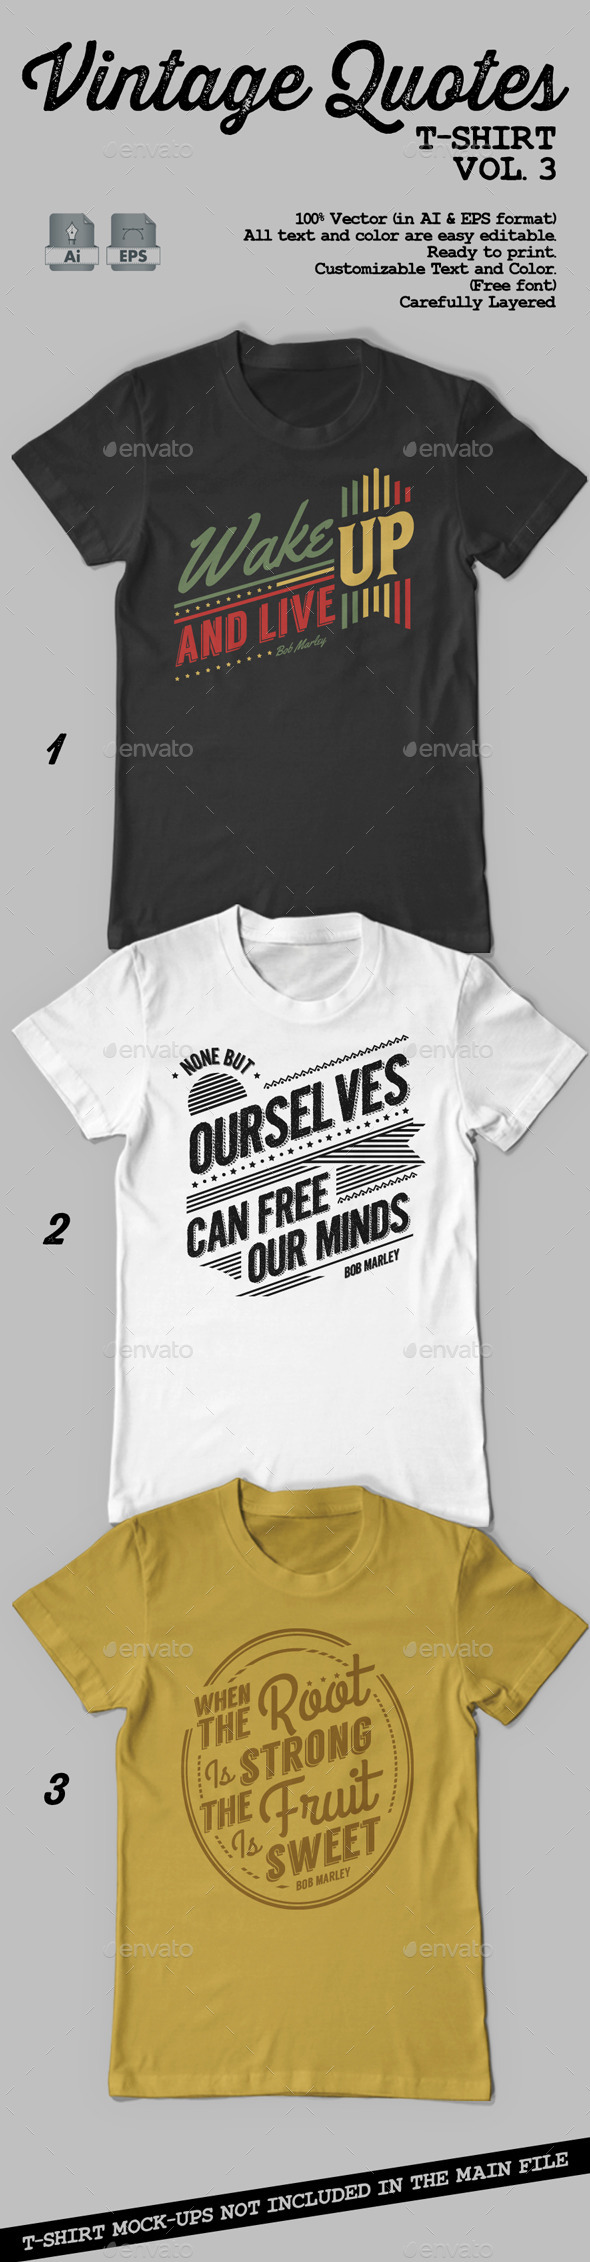 GraphicRiver Vintage Quotes T-Shirt Vol 3 9324264